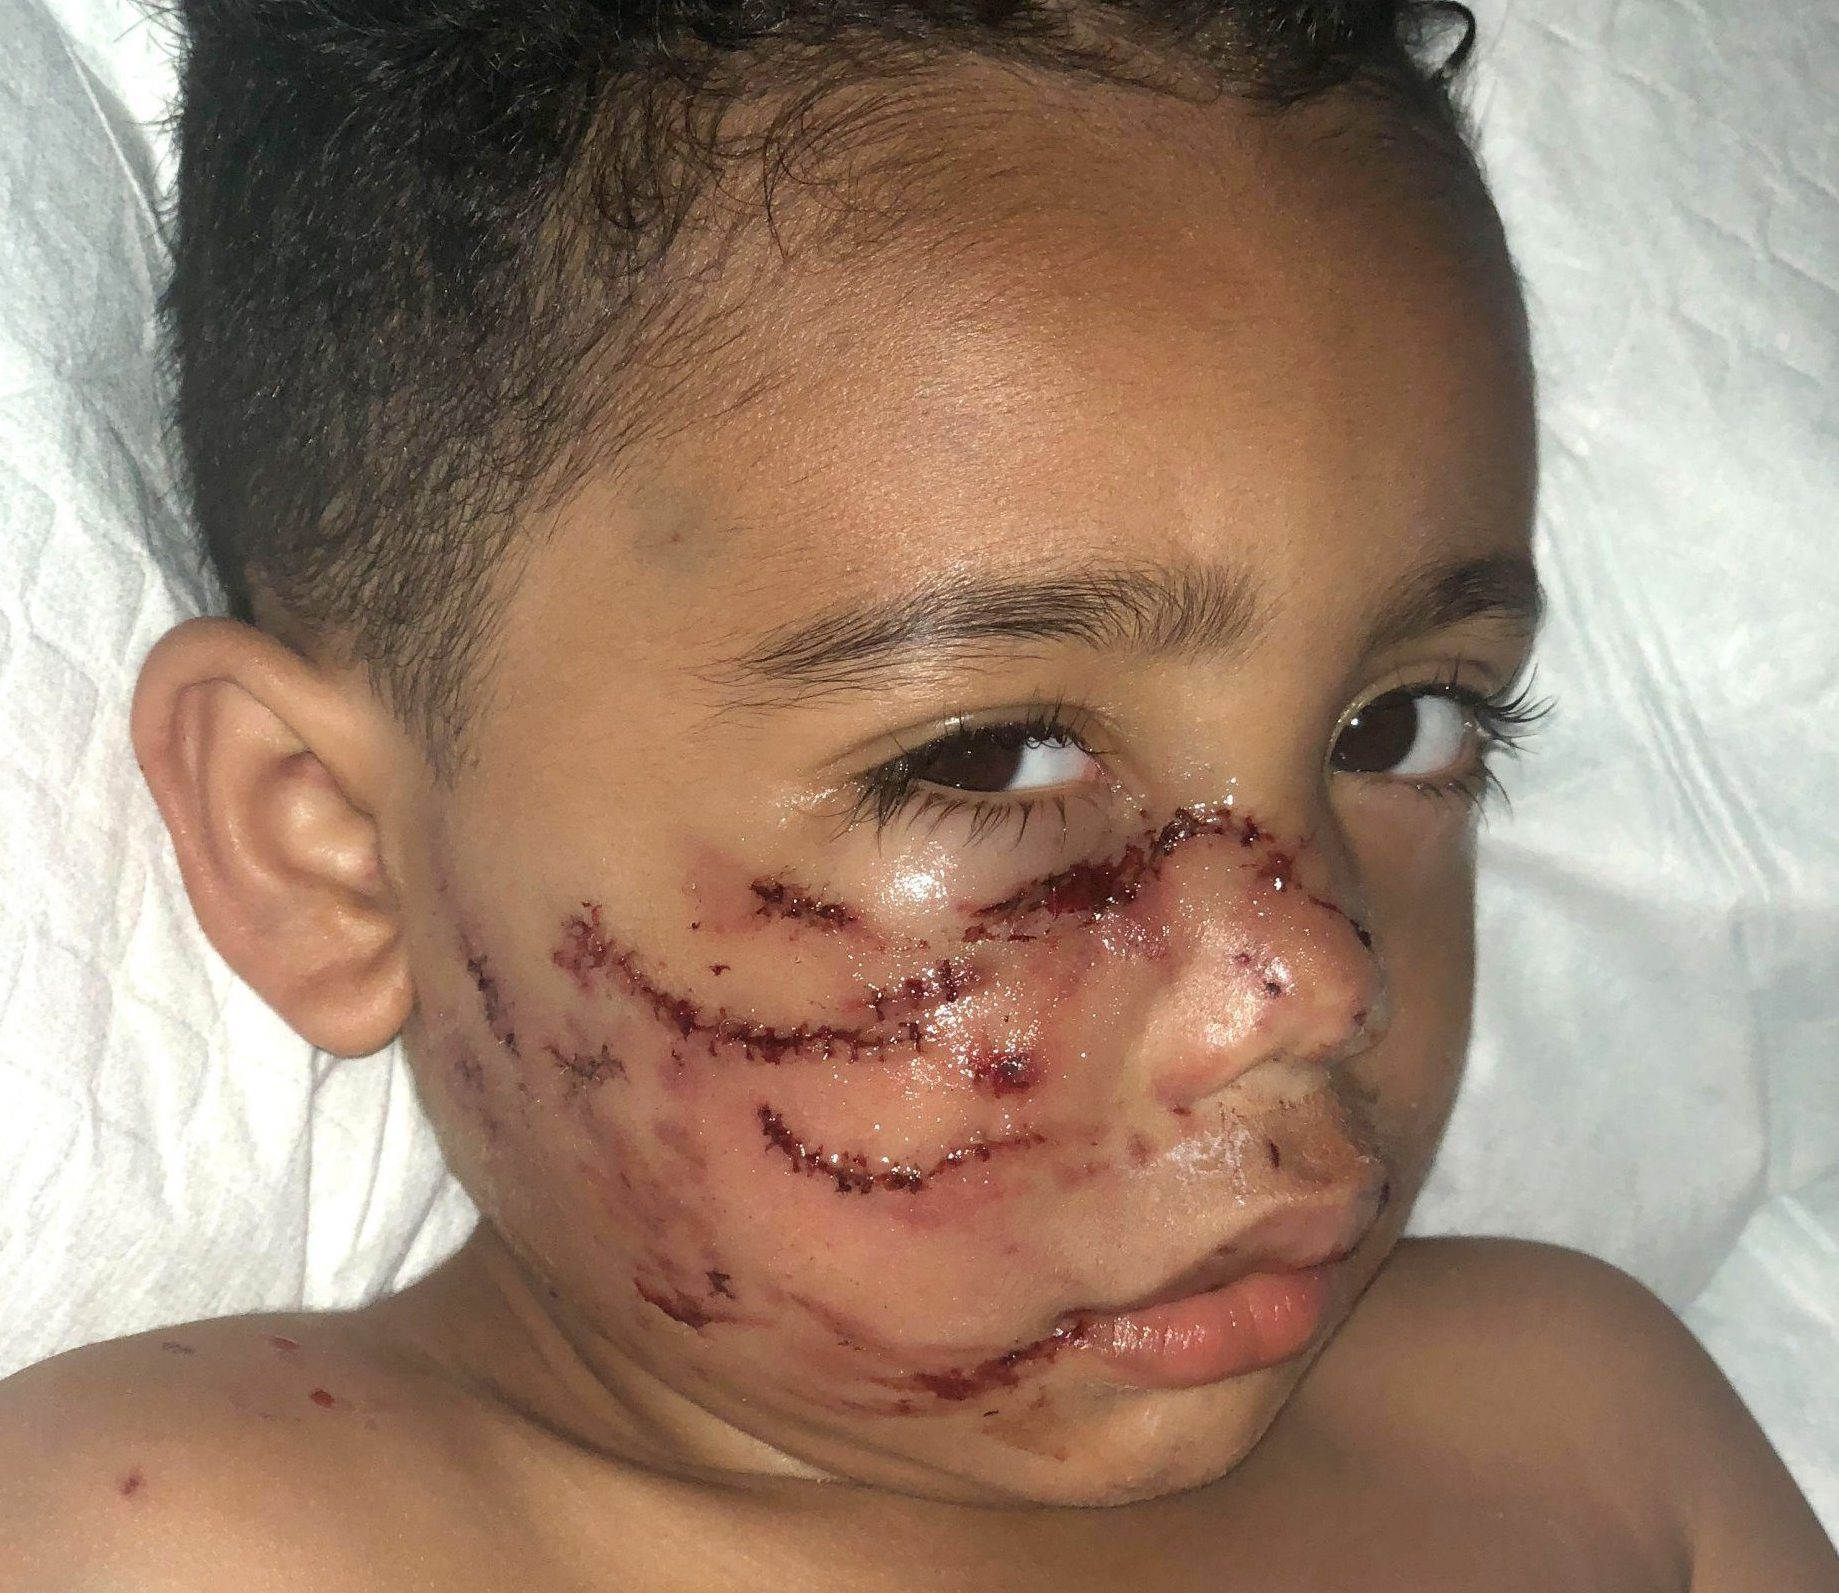 PORTLAND, OREGON, USA: Micajah in hospital after the attack. A MUM has revealed her heartbreak that made it difficult for her to even look at her toddler after his face was mauled by her parents??? pet dog and has now set up a Go Fund Me page so she can pay for his facial reconstruction. On May 12, this year, insurance coordinator, Sarah Fuller (28) from Portland, Oregon, USA, was at work whilst her parents were looking after her three-year-old son, Micajah, who was two-and-a-half at the time just like they had done countless times before. Then at around lunchtime on that day, Sarah received a devastating phone call from her mum that no parent ever wants, telling her that her adorable little boy had been attacked by the family Pitbull, Bobo, who they had had for nine-years. Sarah left work and drove frantically to the hospital where her parents had taken Micajah but was warned by the nurse that she couldn???t go into the room until he had been bandaged up as his injuries were so shocking. At first, Sarah found it incredibly difficult to look at her son without breaking down. Micajah needed to undergo facial reconstruction surgery due to the punctures from the bite going through his cheek, which stretched the nerves in his face, teared back his gums and pulled out his front tooth, he also underwent gum grafting and will have to undergo further facial surgery once he has finished growing. Sarah has set up a Go Fund Me page to help cover the costs. Understandably, the attack caused tension within Sarah???s family but her parents took full responsibility for Bobo???s actions and Sarah would never sue her parents as they mean the world to her. MDWfeatures / Sarah Fuller